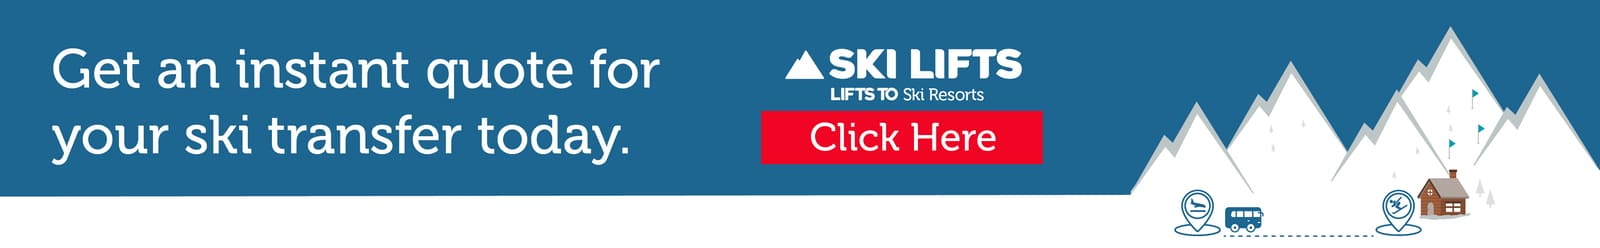 Get an instant quote for your ski transfer today